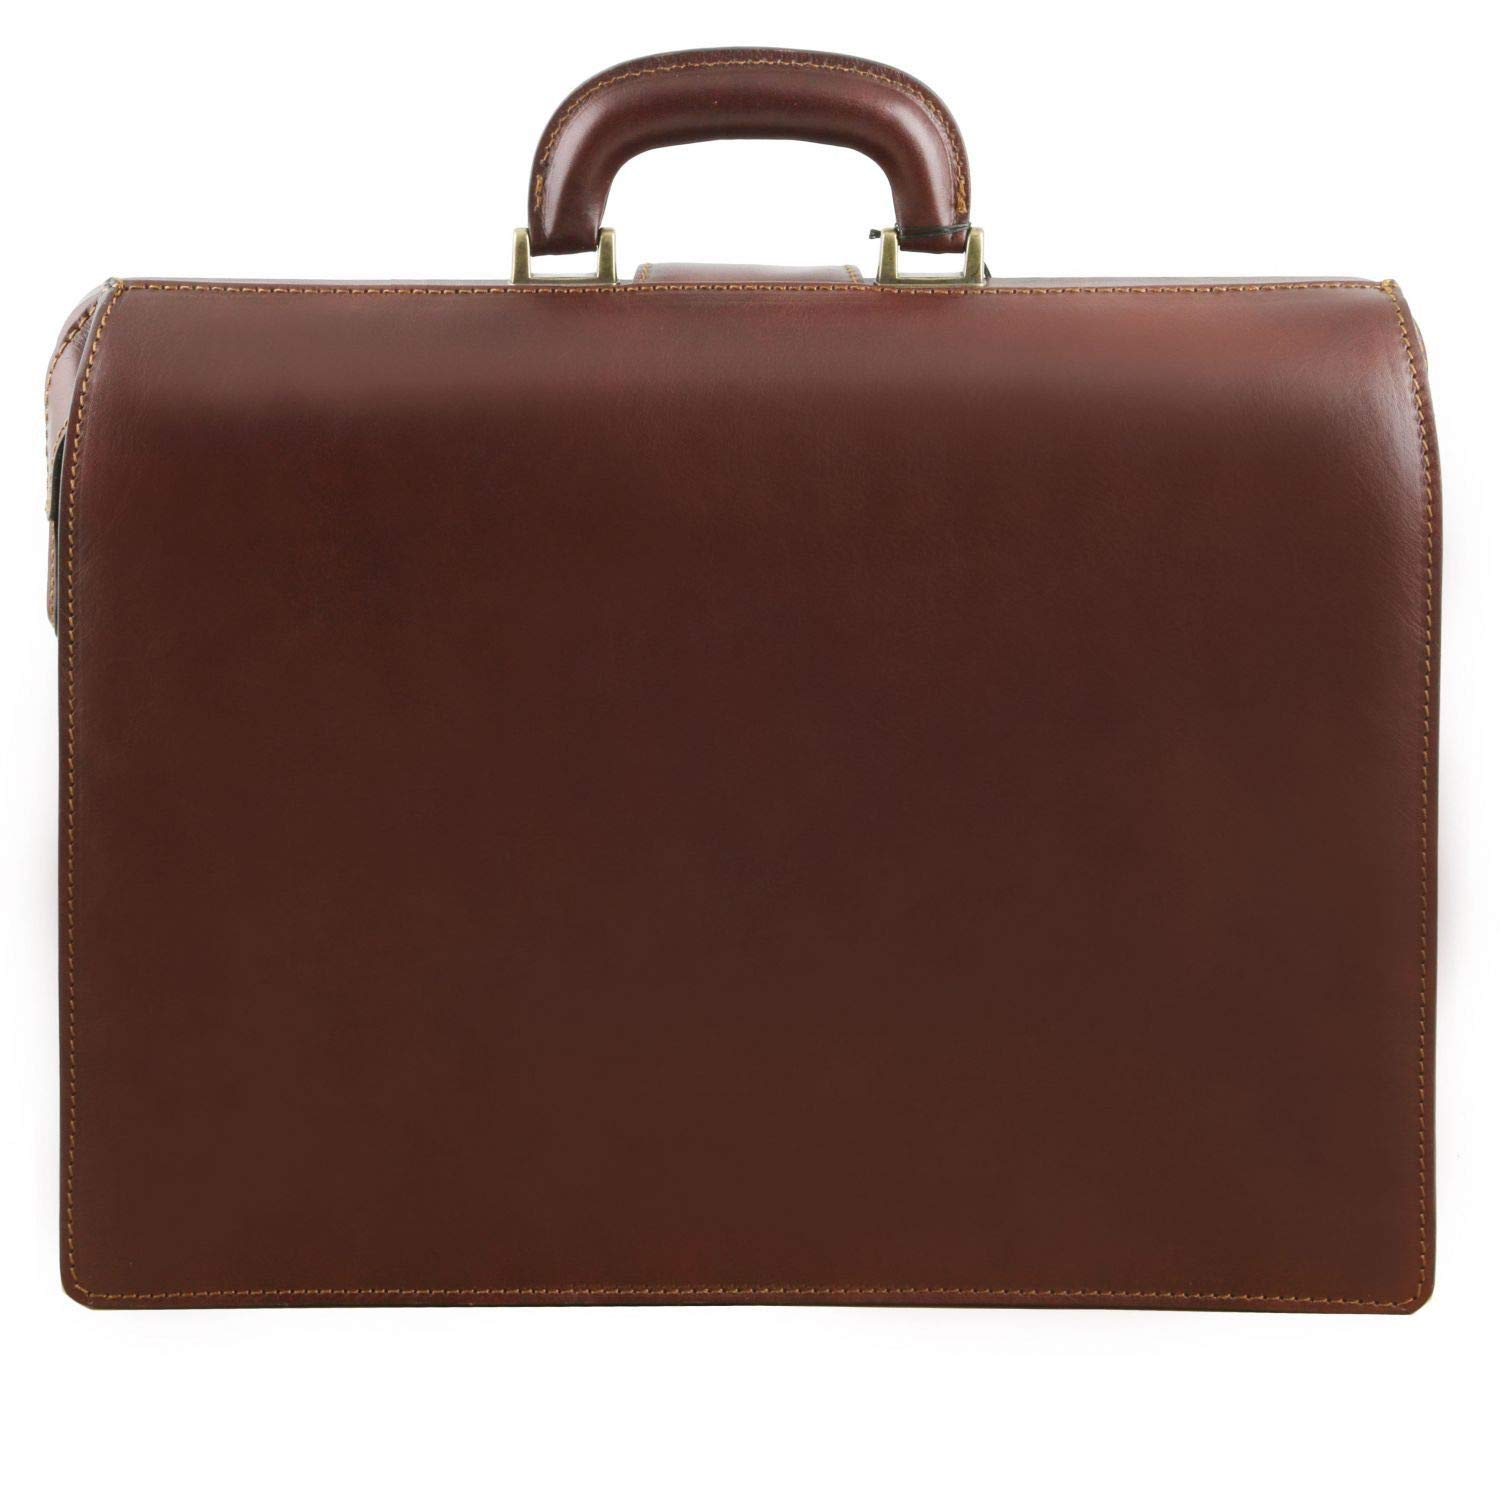 En 3 Canova Avc Compartiments Leather Cuir Tuscany Mallette Medicale X80PkNnwO